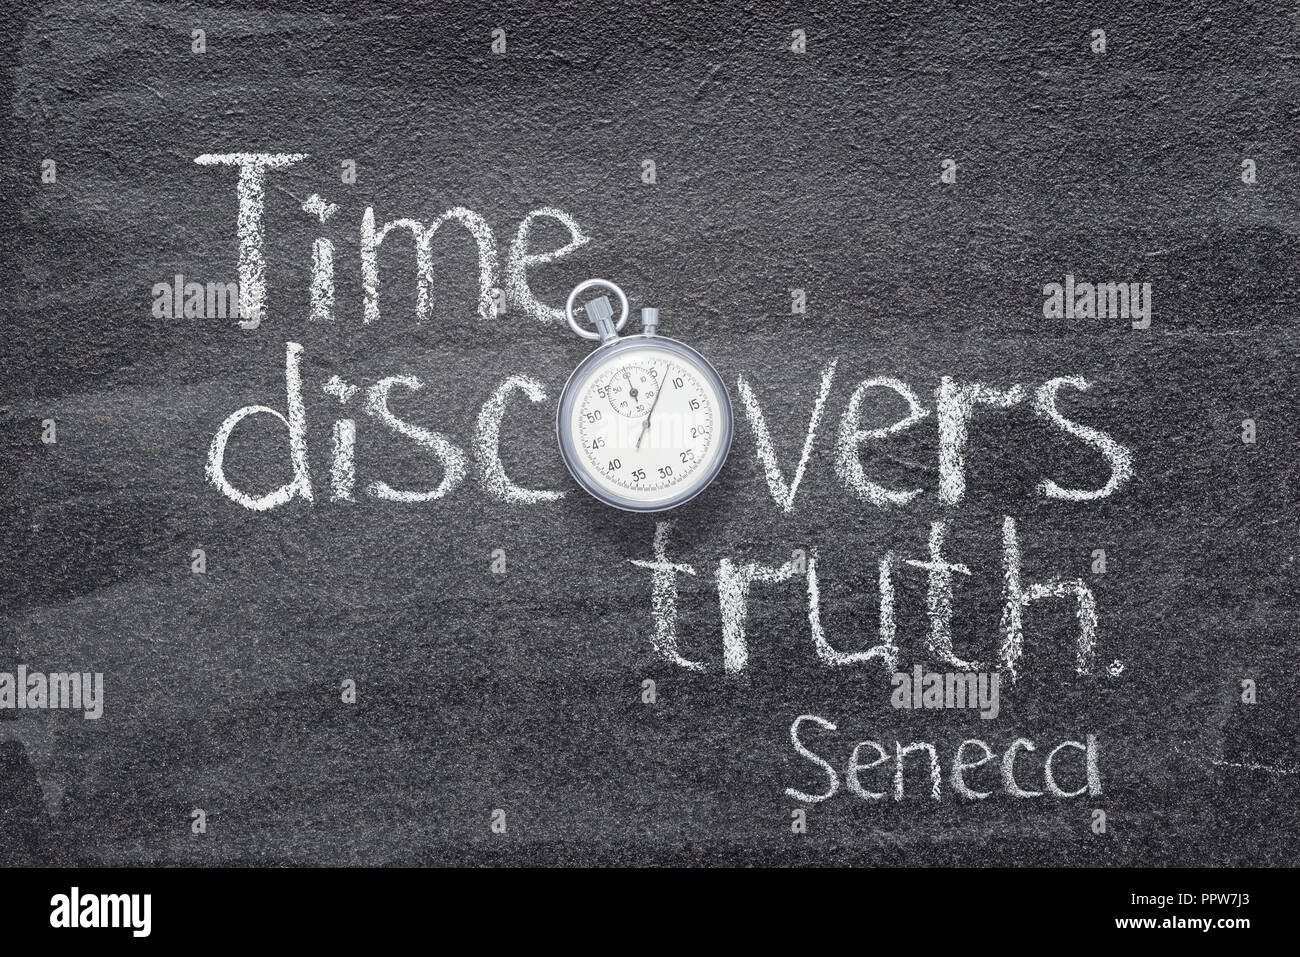 Time discovers truth - quote of ancient Roman philosopher Seneca written on chalkboard with vintage stopwatch instead of O - Stock Image